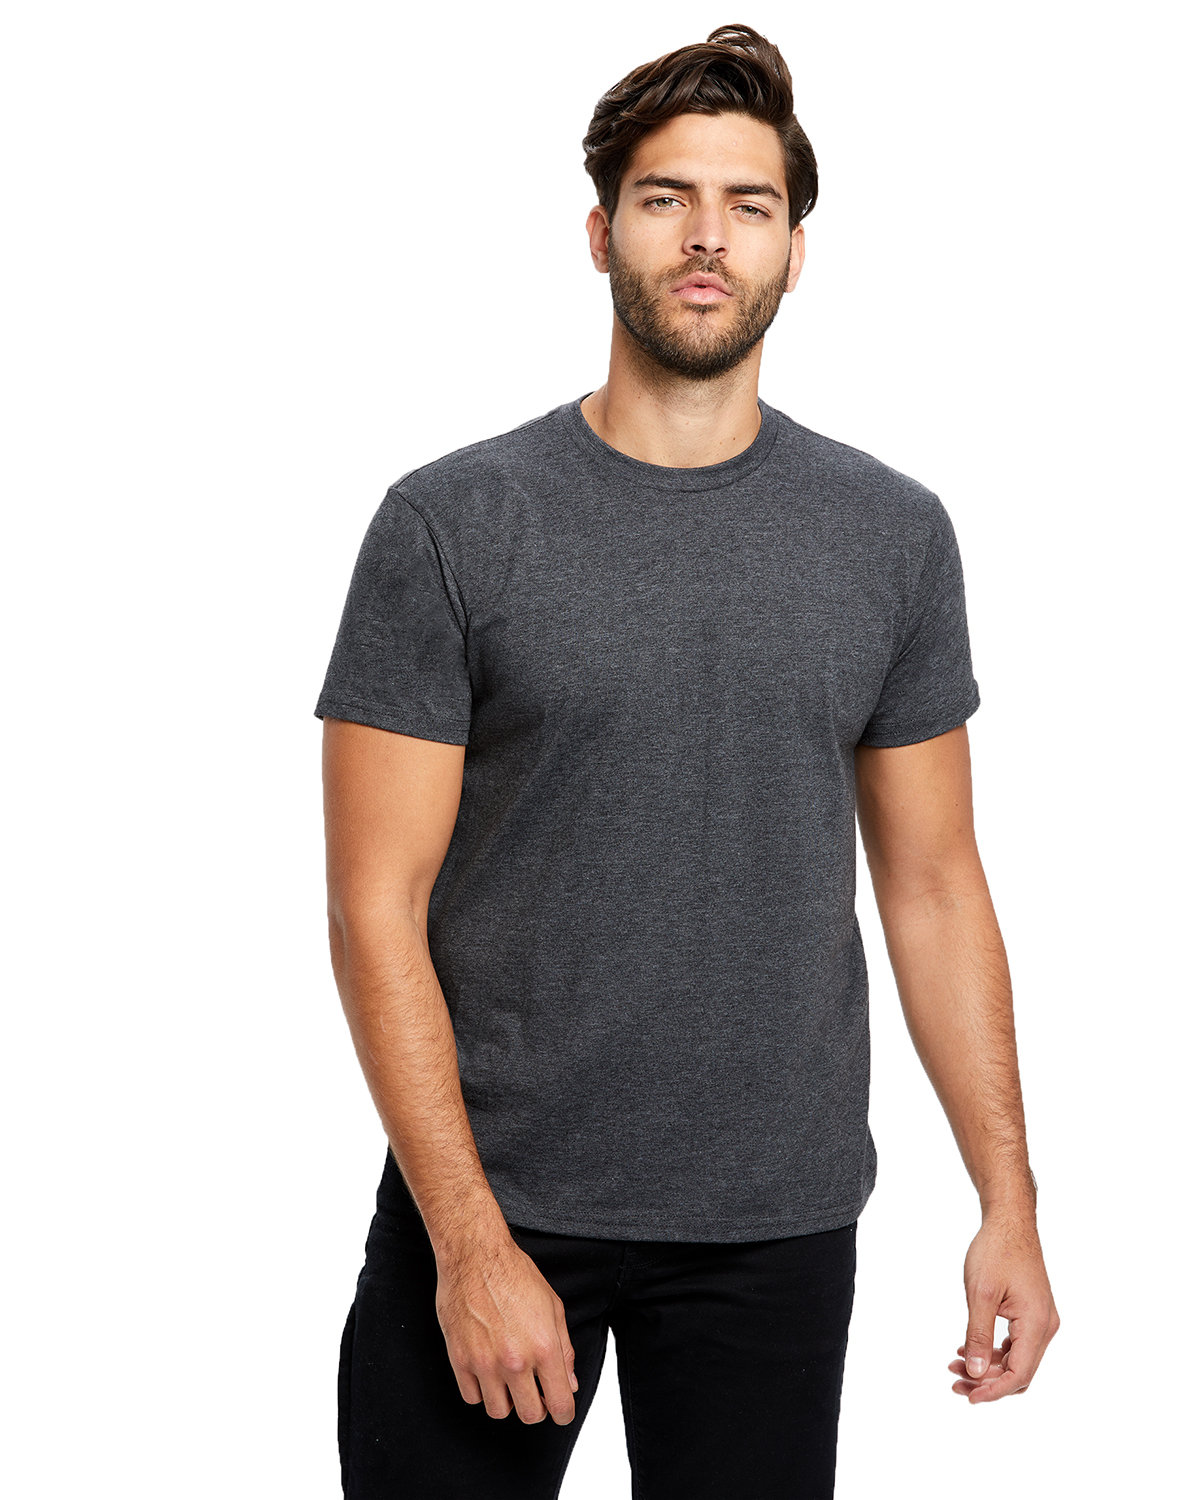 US Blanks Men's Made in USA Short Sleeve Crew T-Shirt HEATHER CHARCOAL